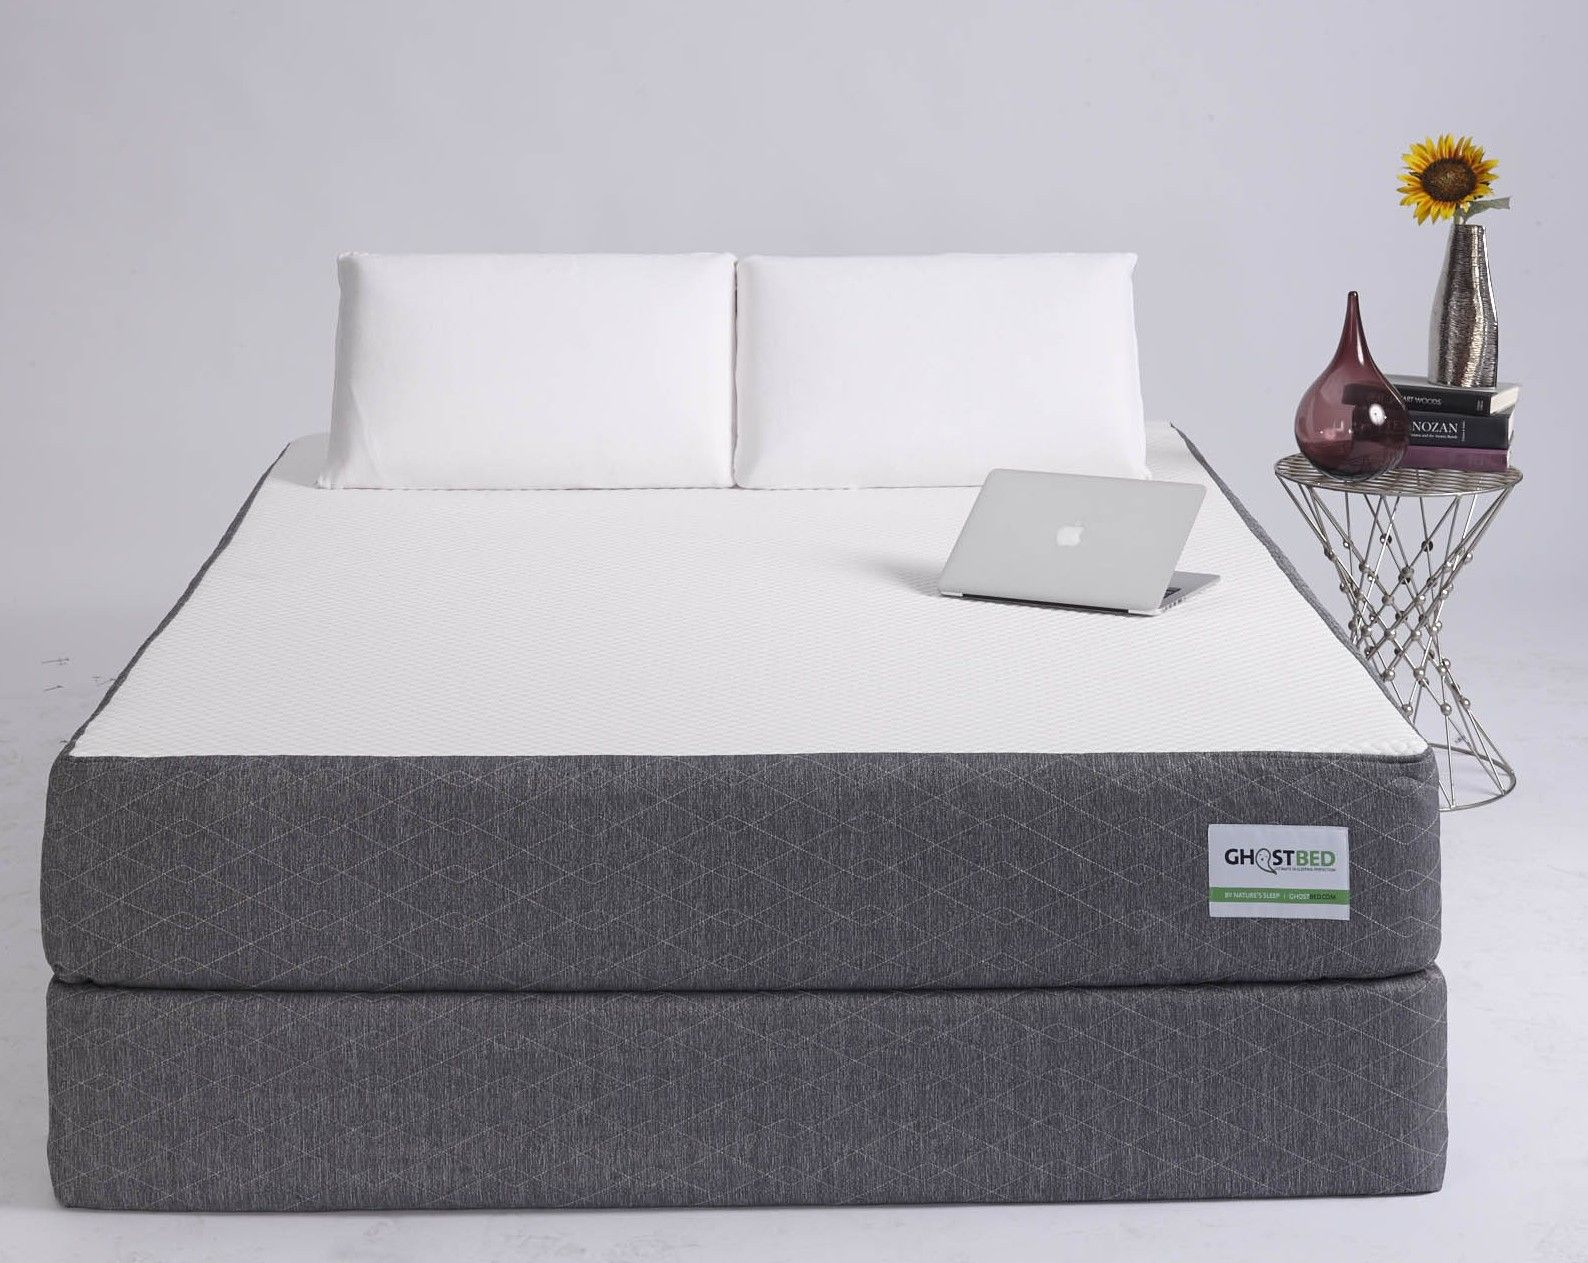 Ghost Bed Mattress Review and save on your own